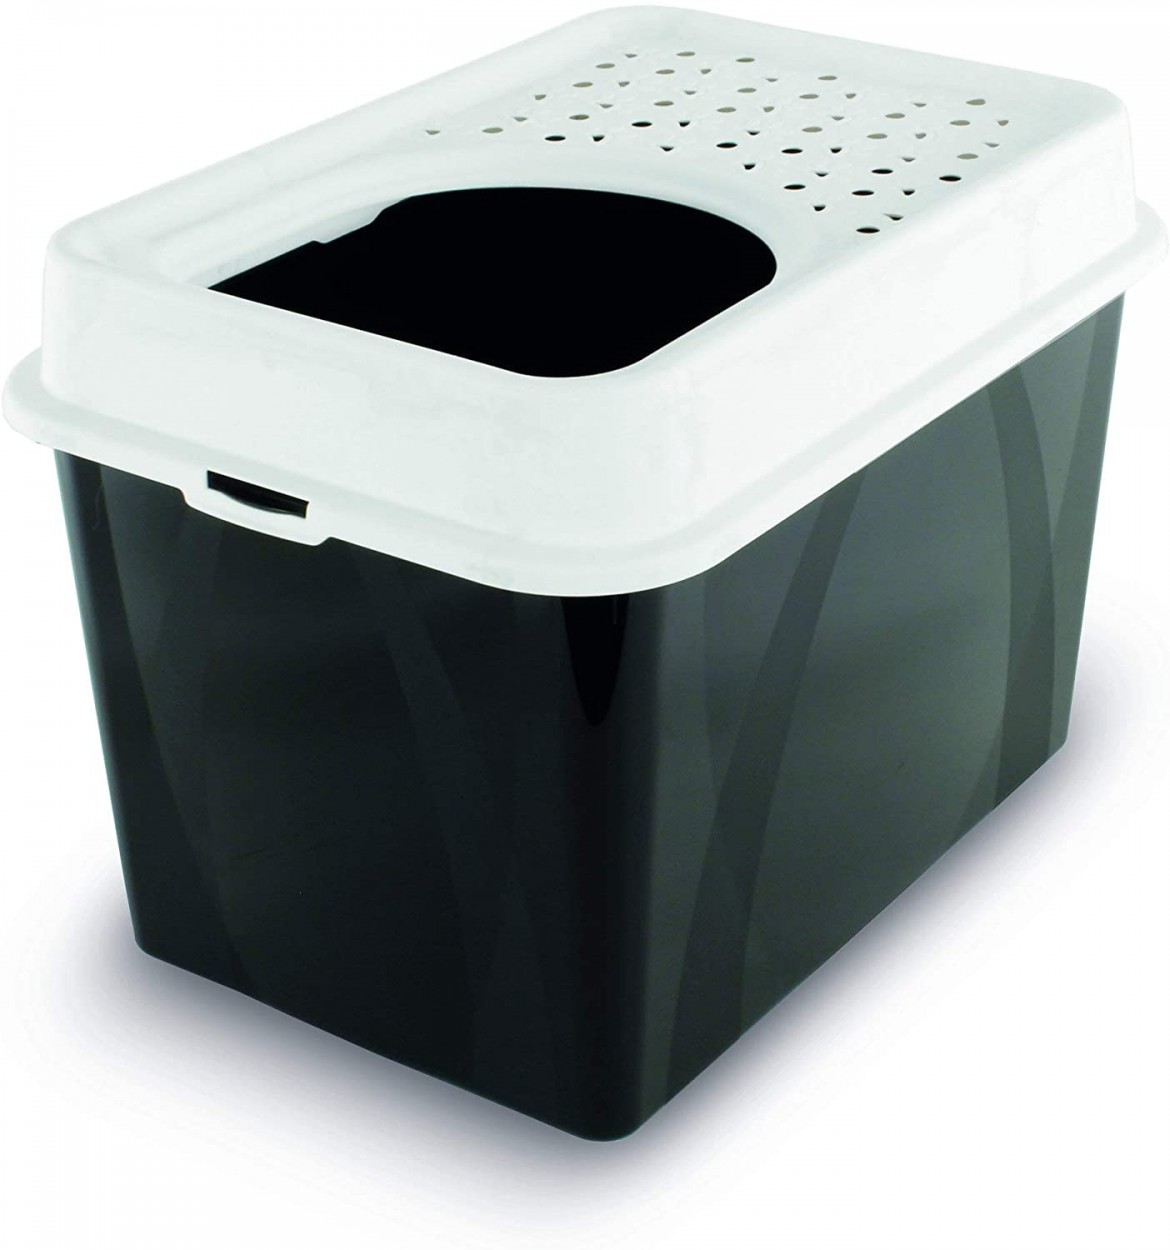 10 Best Cat Litter Boxes and Pans of 2020 - Petminco.com